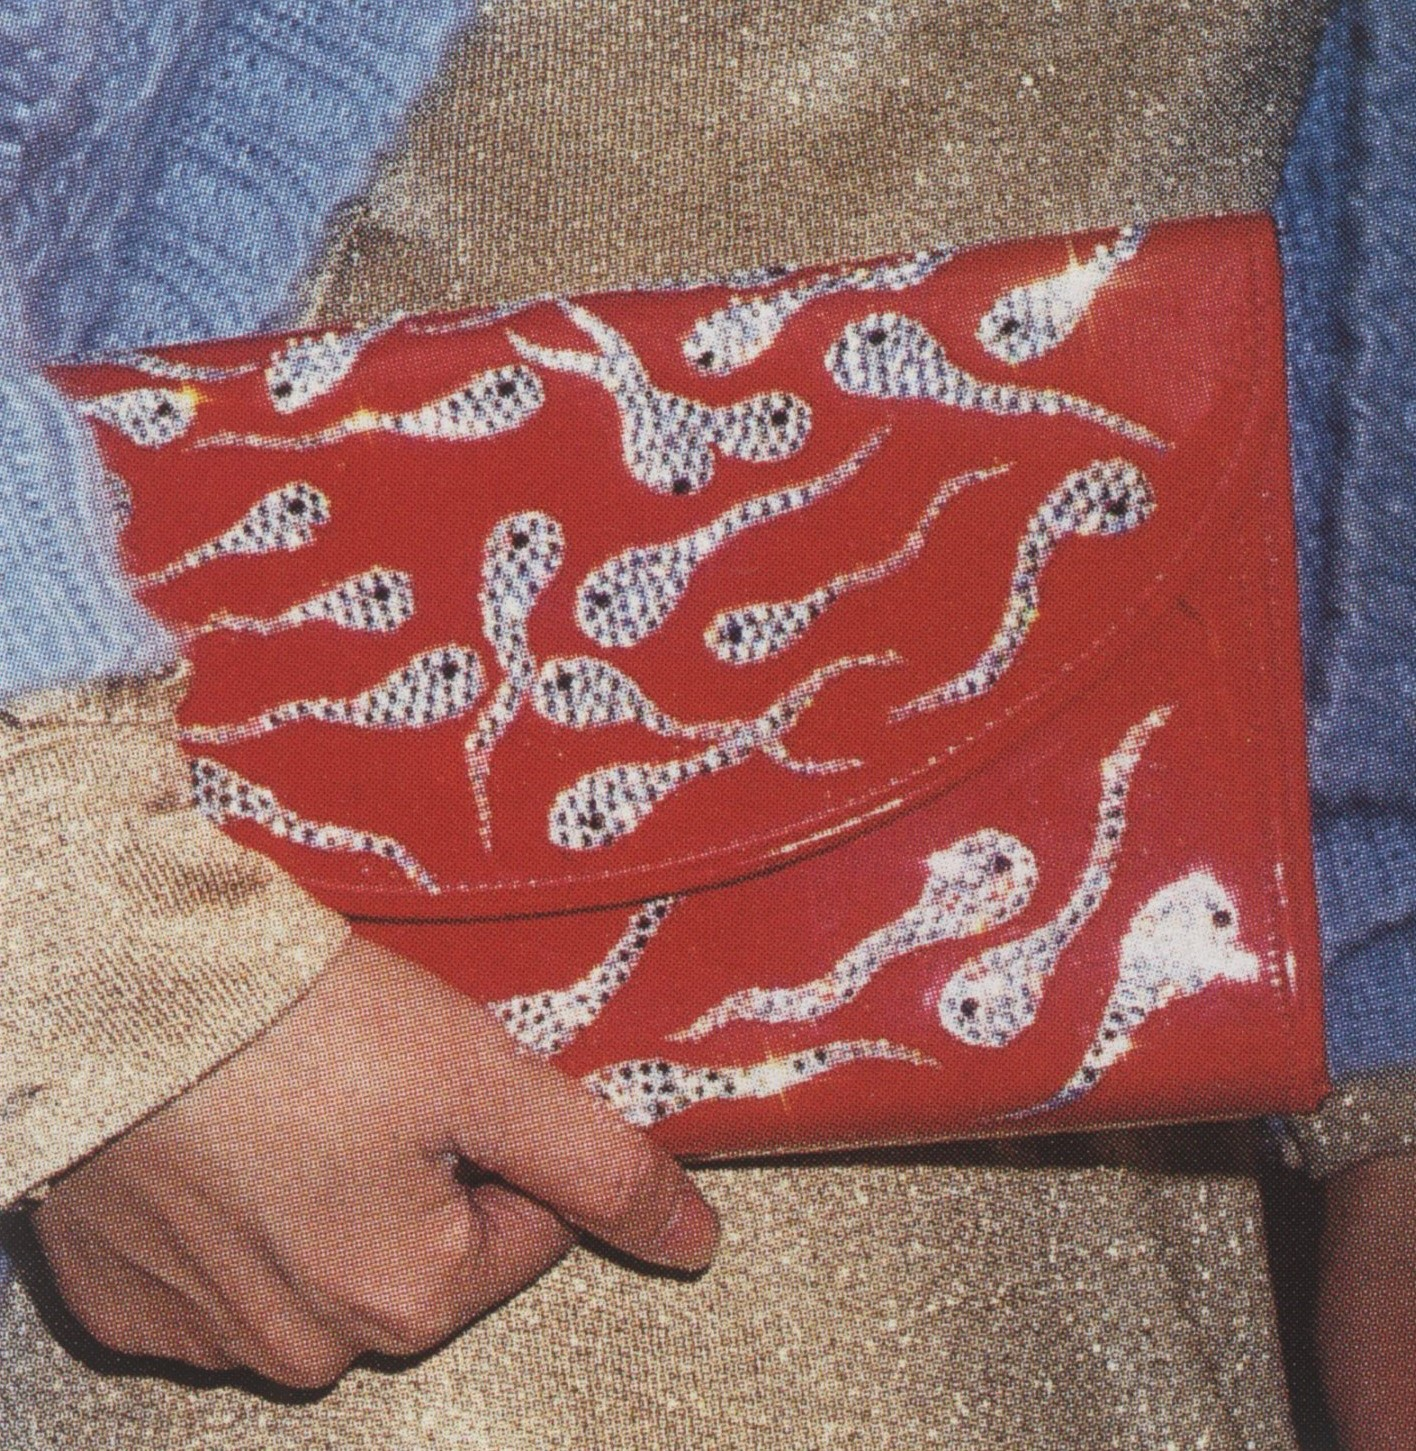 SPERM CLUTCH SEXUAL ACCESSORY ONEHUNDREDTHINGS SELF SERVICE ISSUE N°14 SPRING/SUMMER 2001